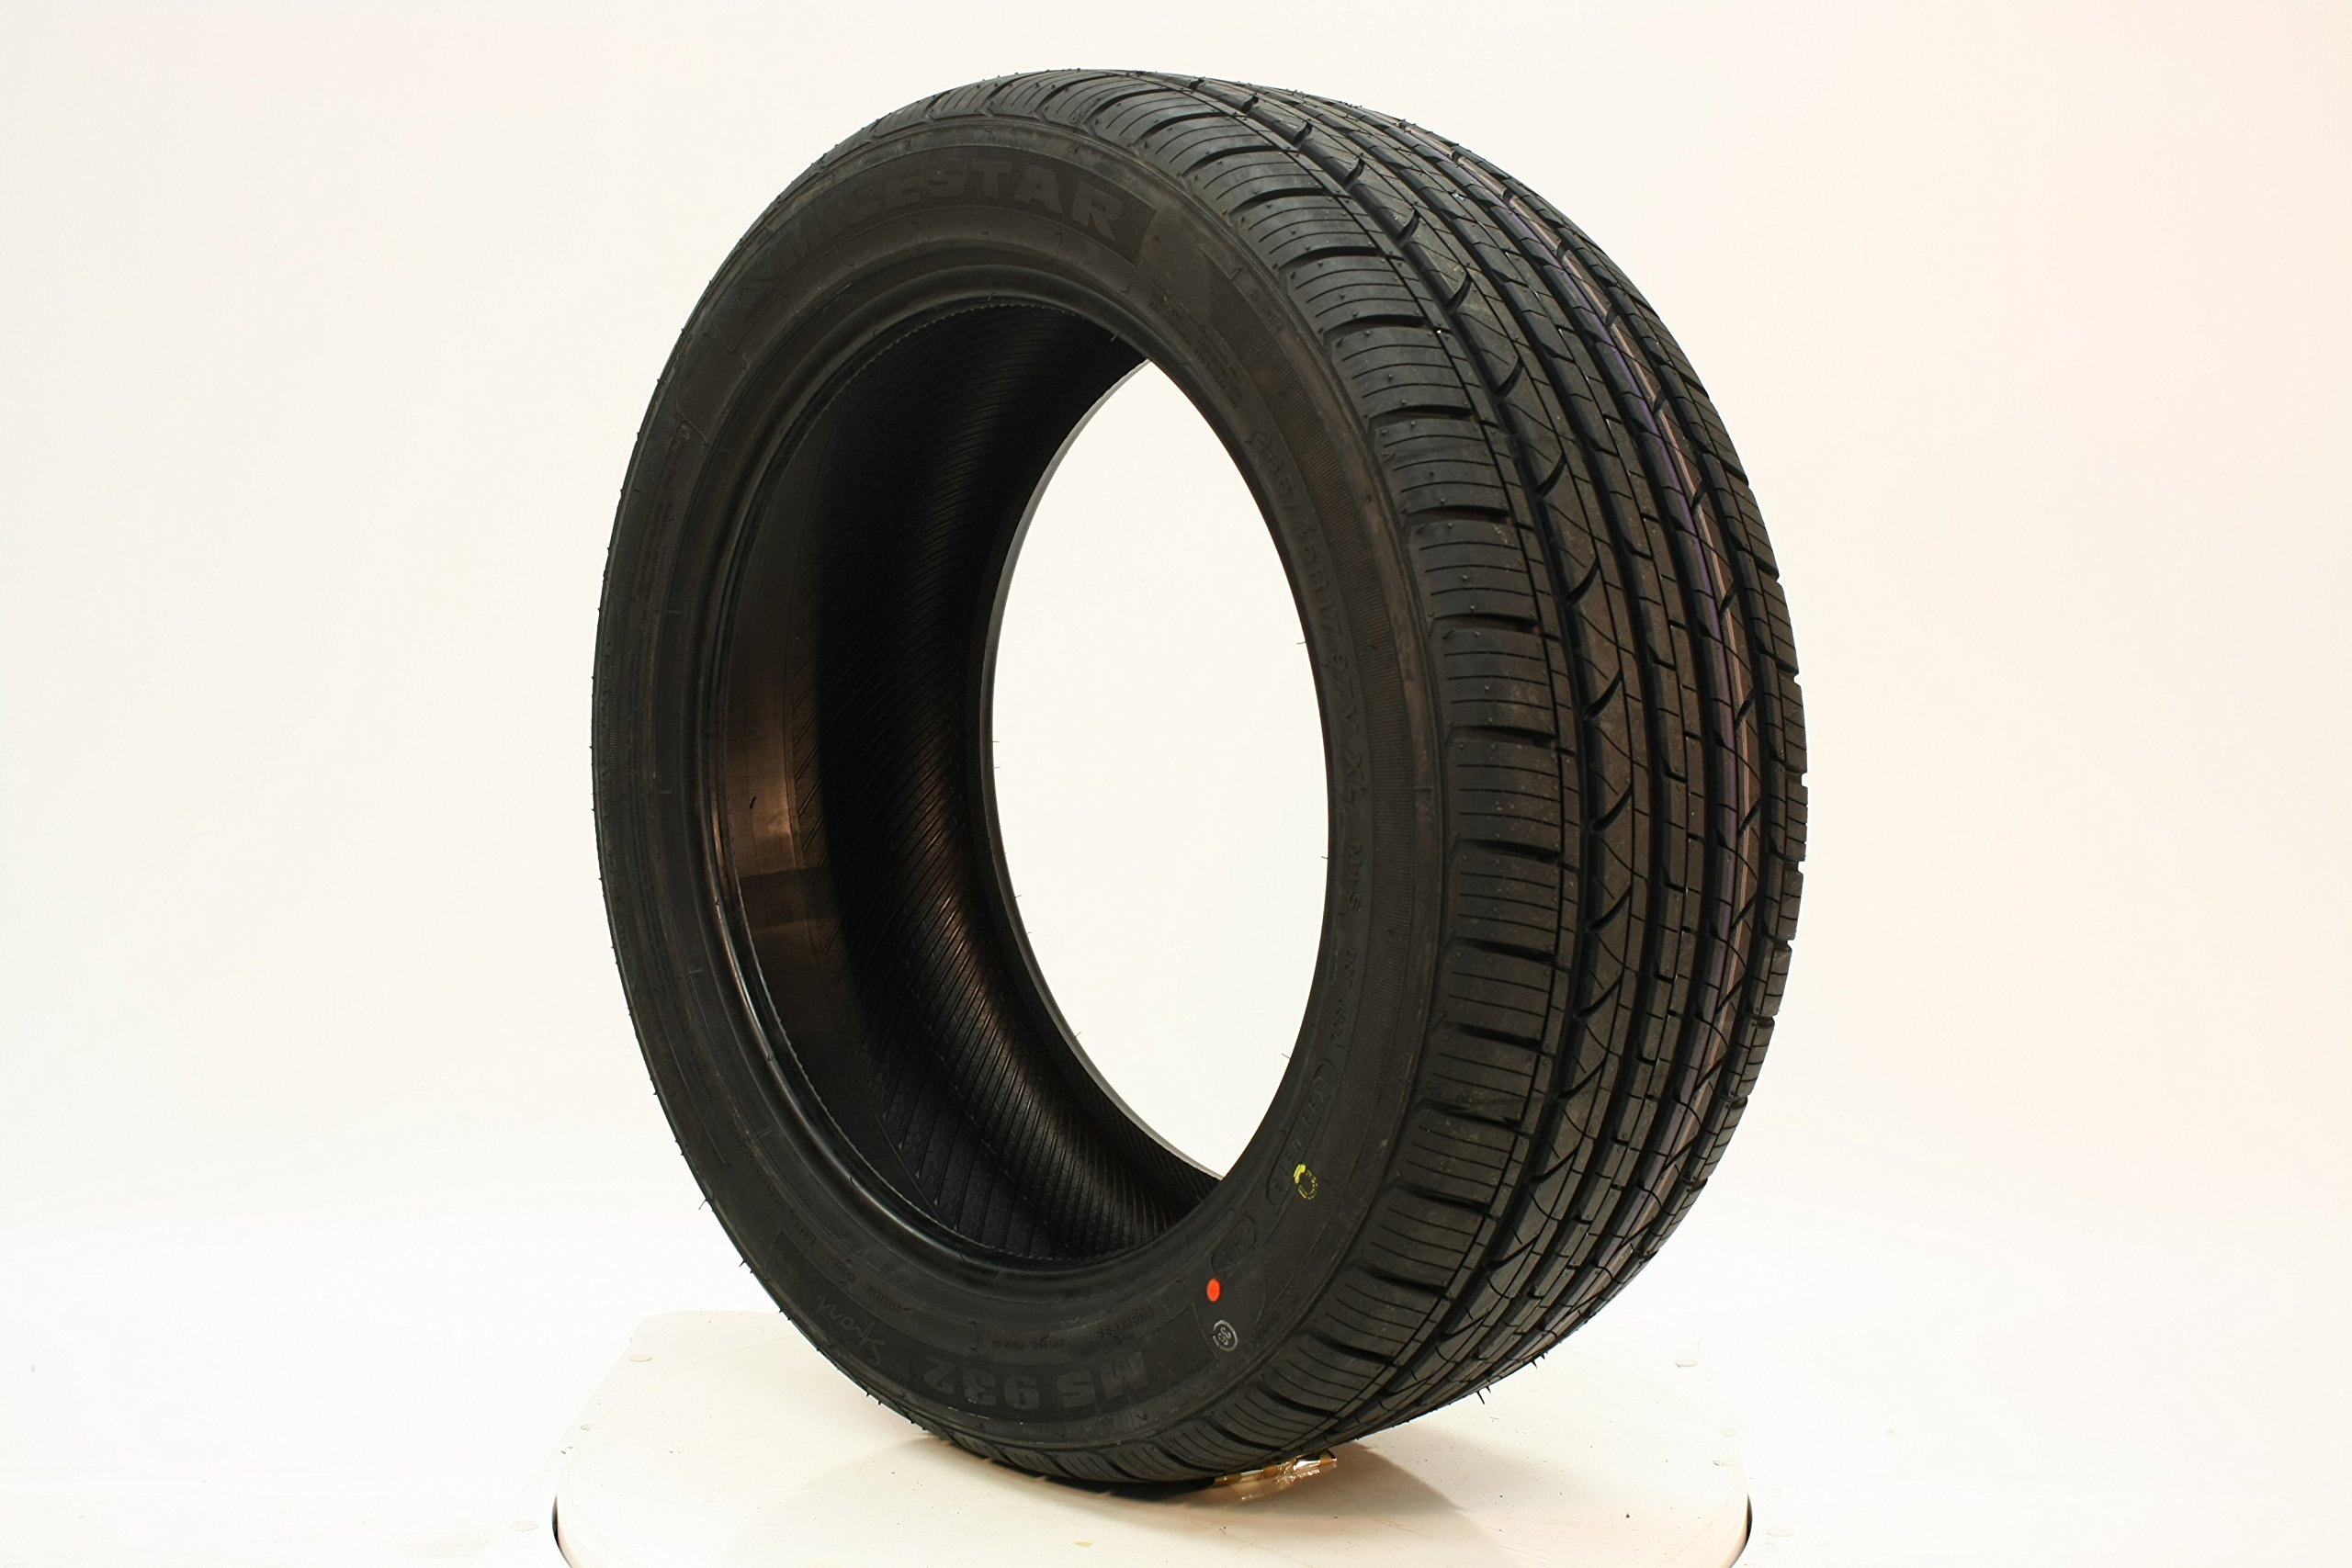 Milestar 24557001 MS932 Sport All-Season Radial Tire - 225/65R17 102V by Milestar (Image #1)